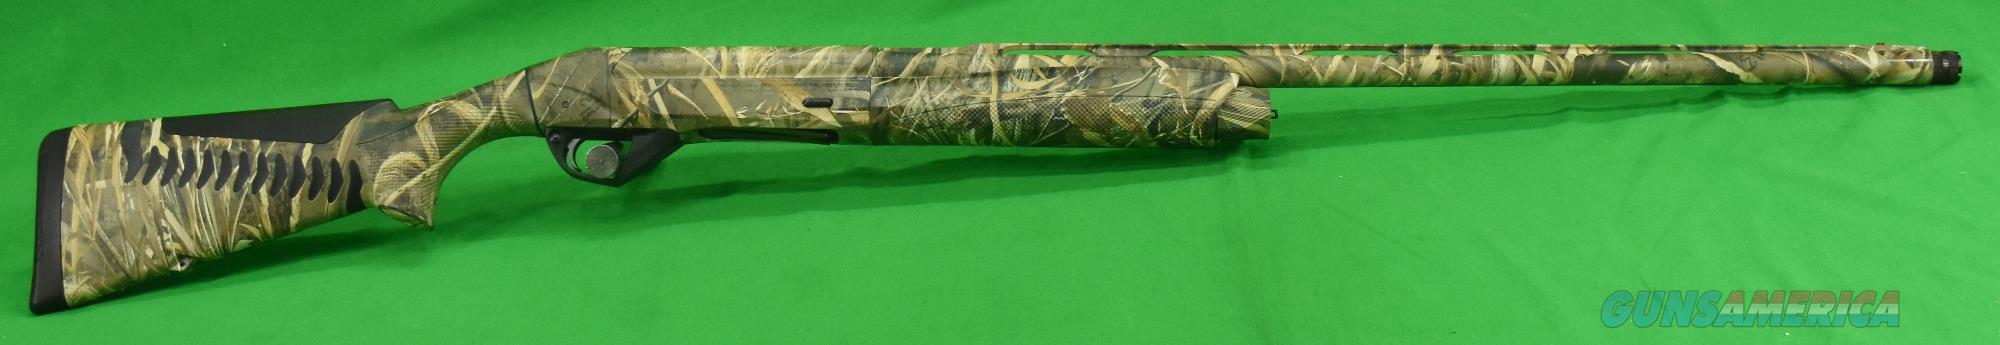 10375 Benelli Super Black Eagle 3 Max-5 Left Handed 12 Ga 28In  Guns > Shotguns > Benelli Shotguns > Sporting